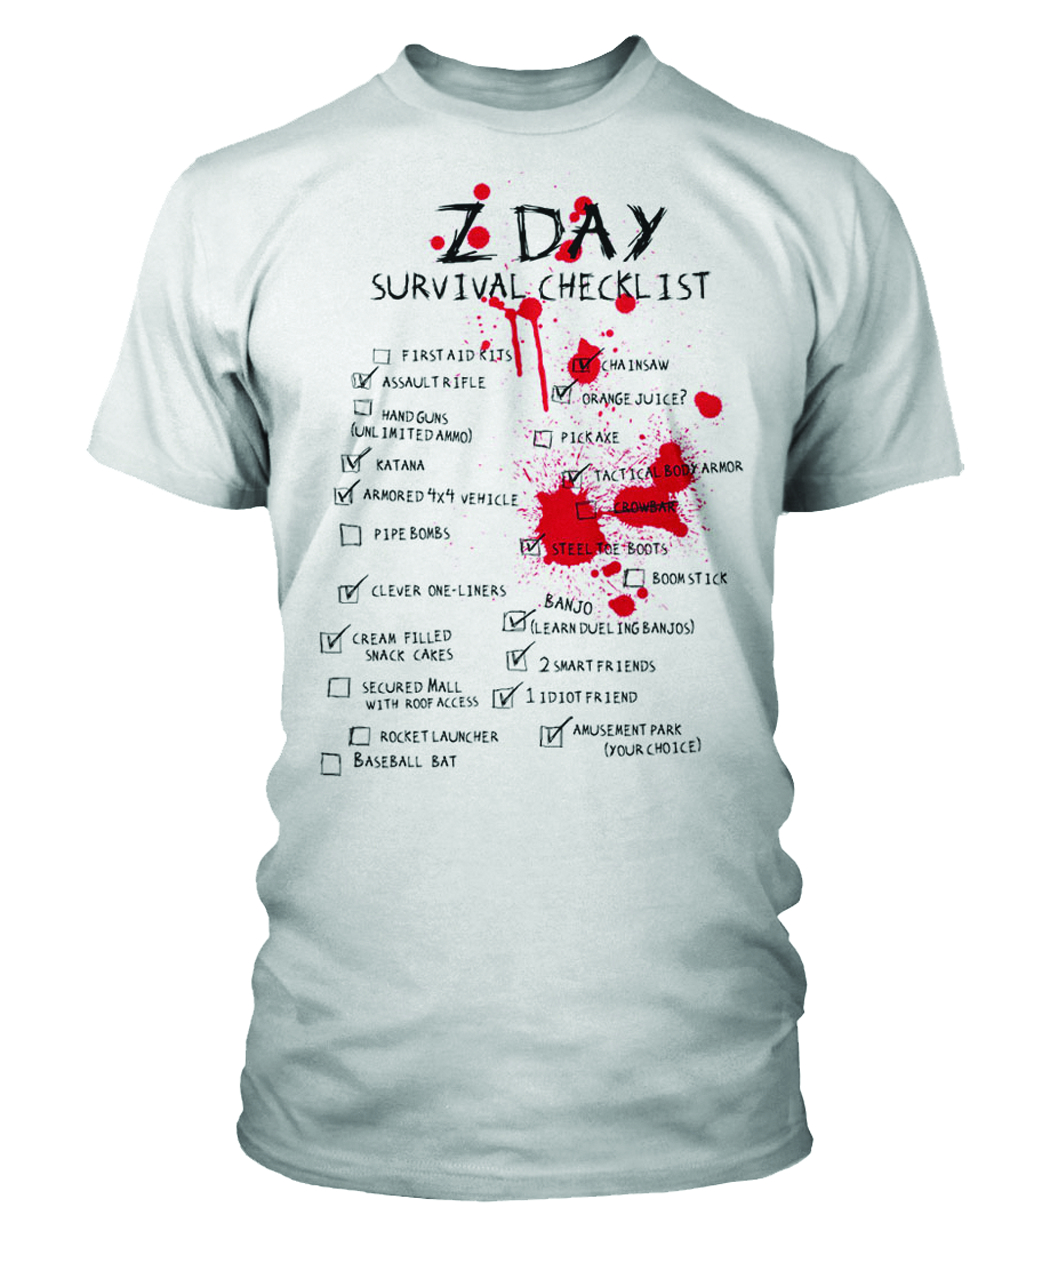 Z-DAY SURVIVAL CHECKLIST WHT T/S XL